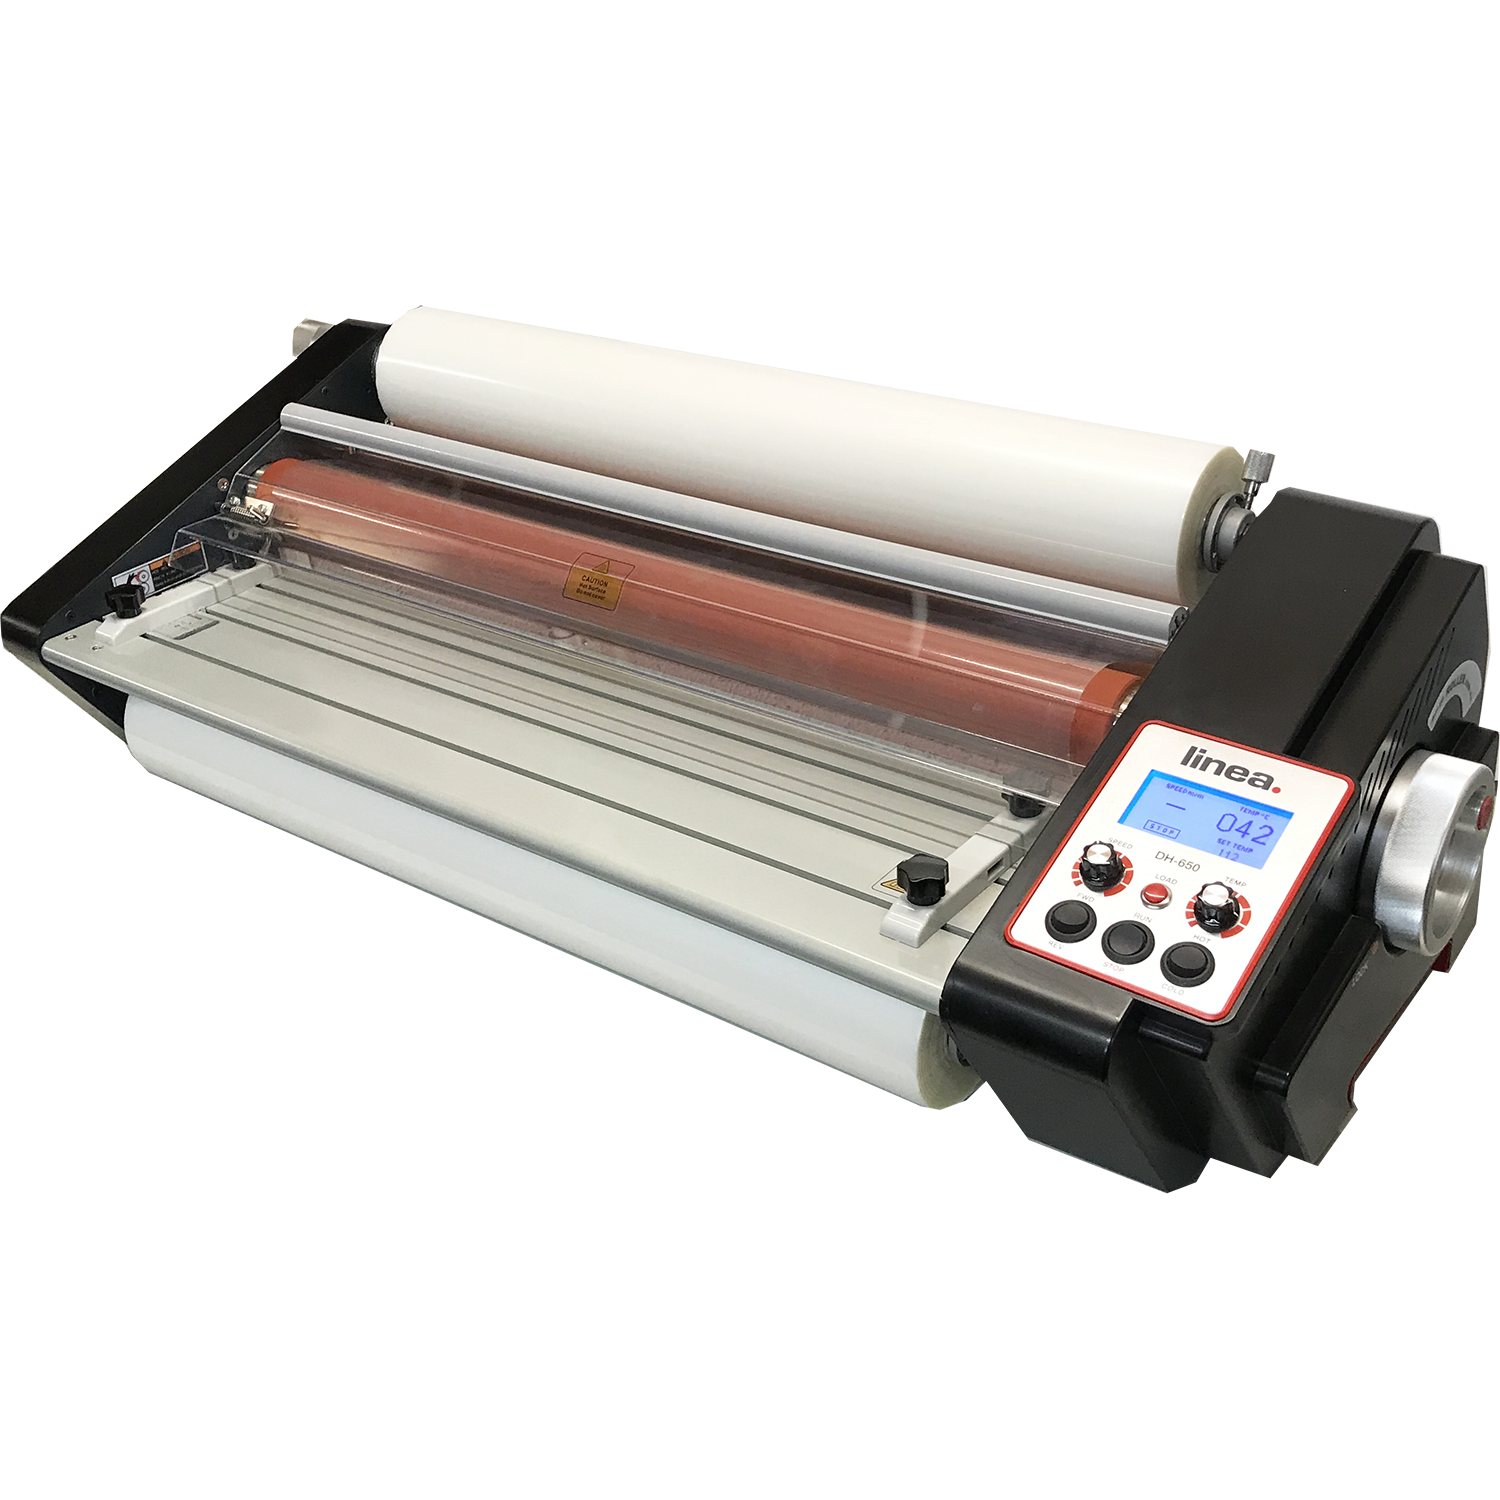 Ex-demo Linea DH-650 Roll-Fed A1 Hot-Seal Laminator